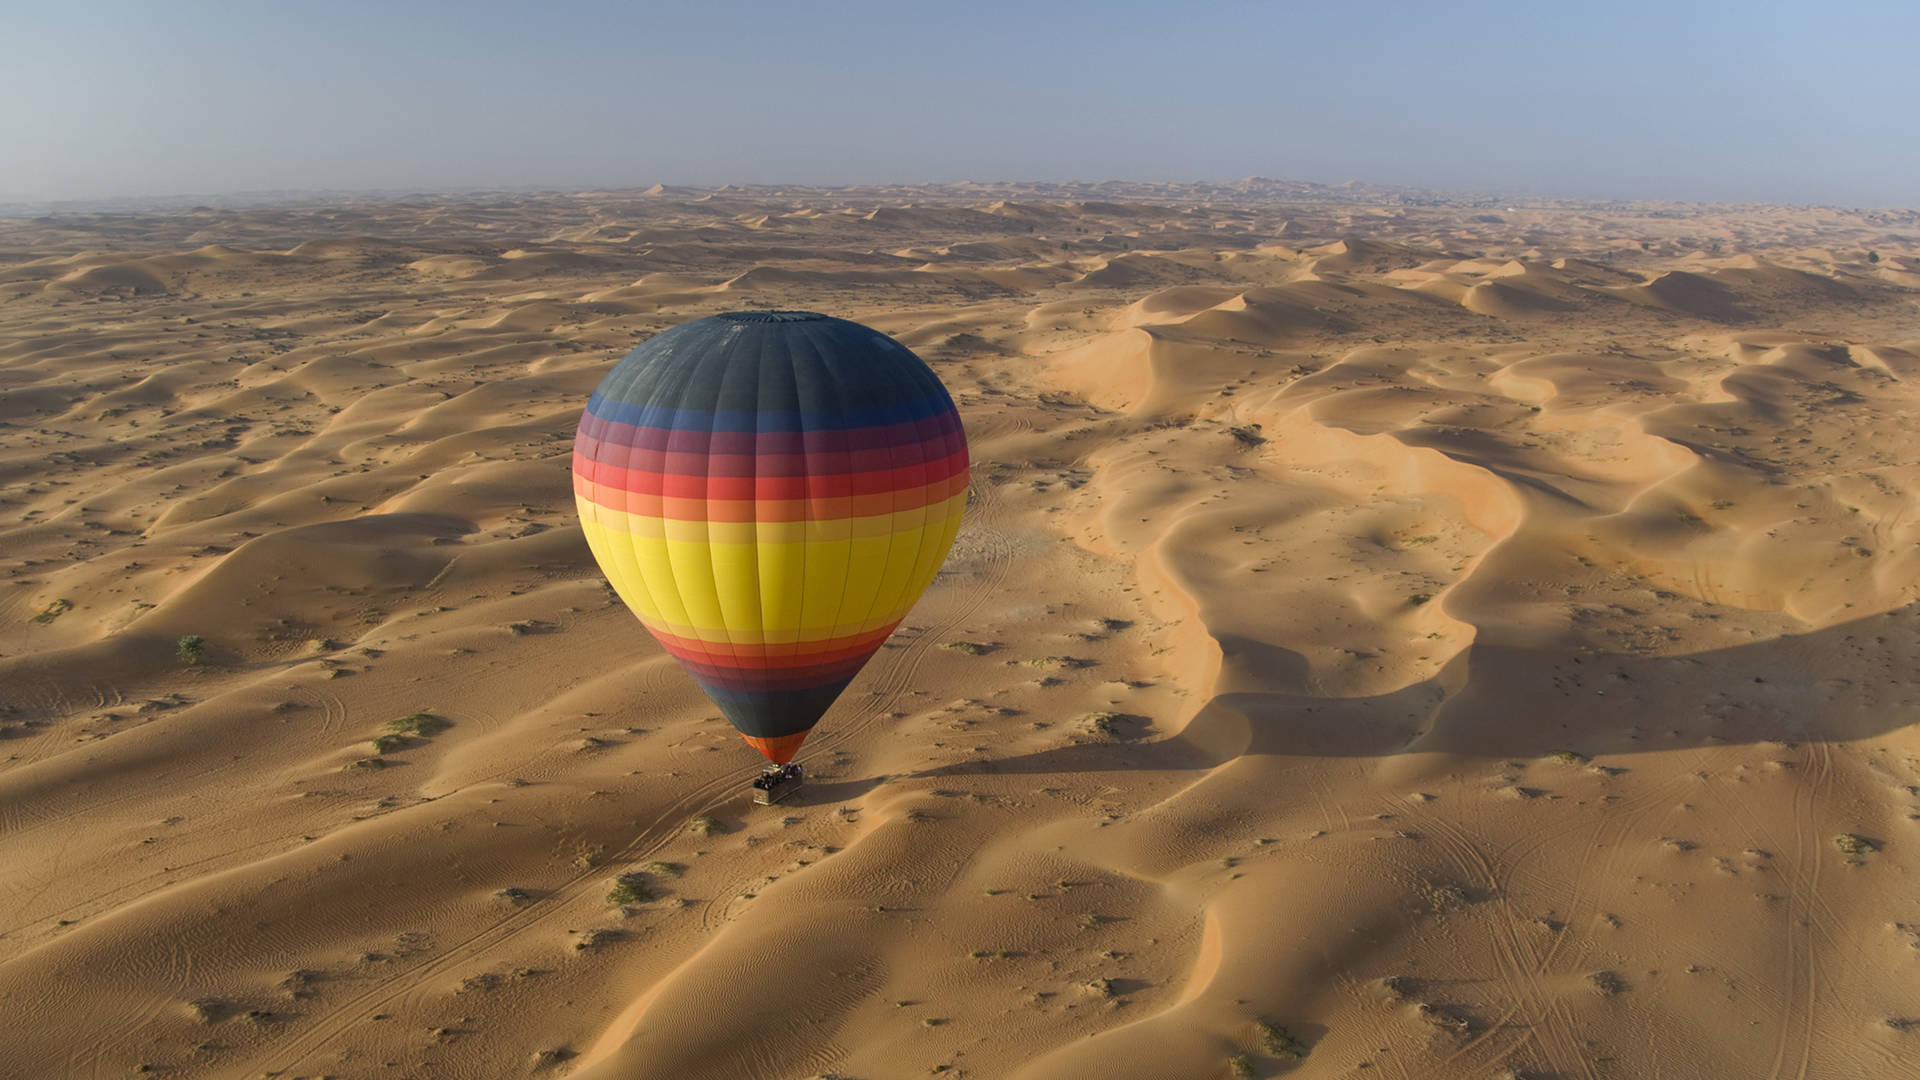 Hot air balloon ride over Dubai